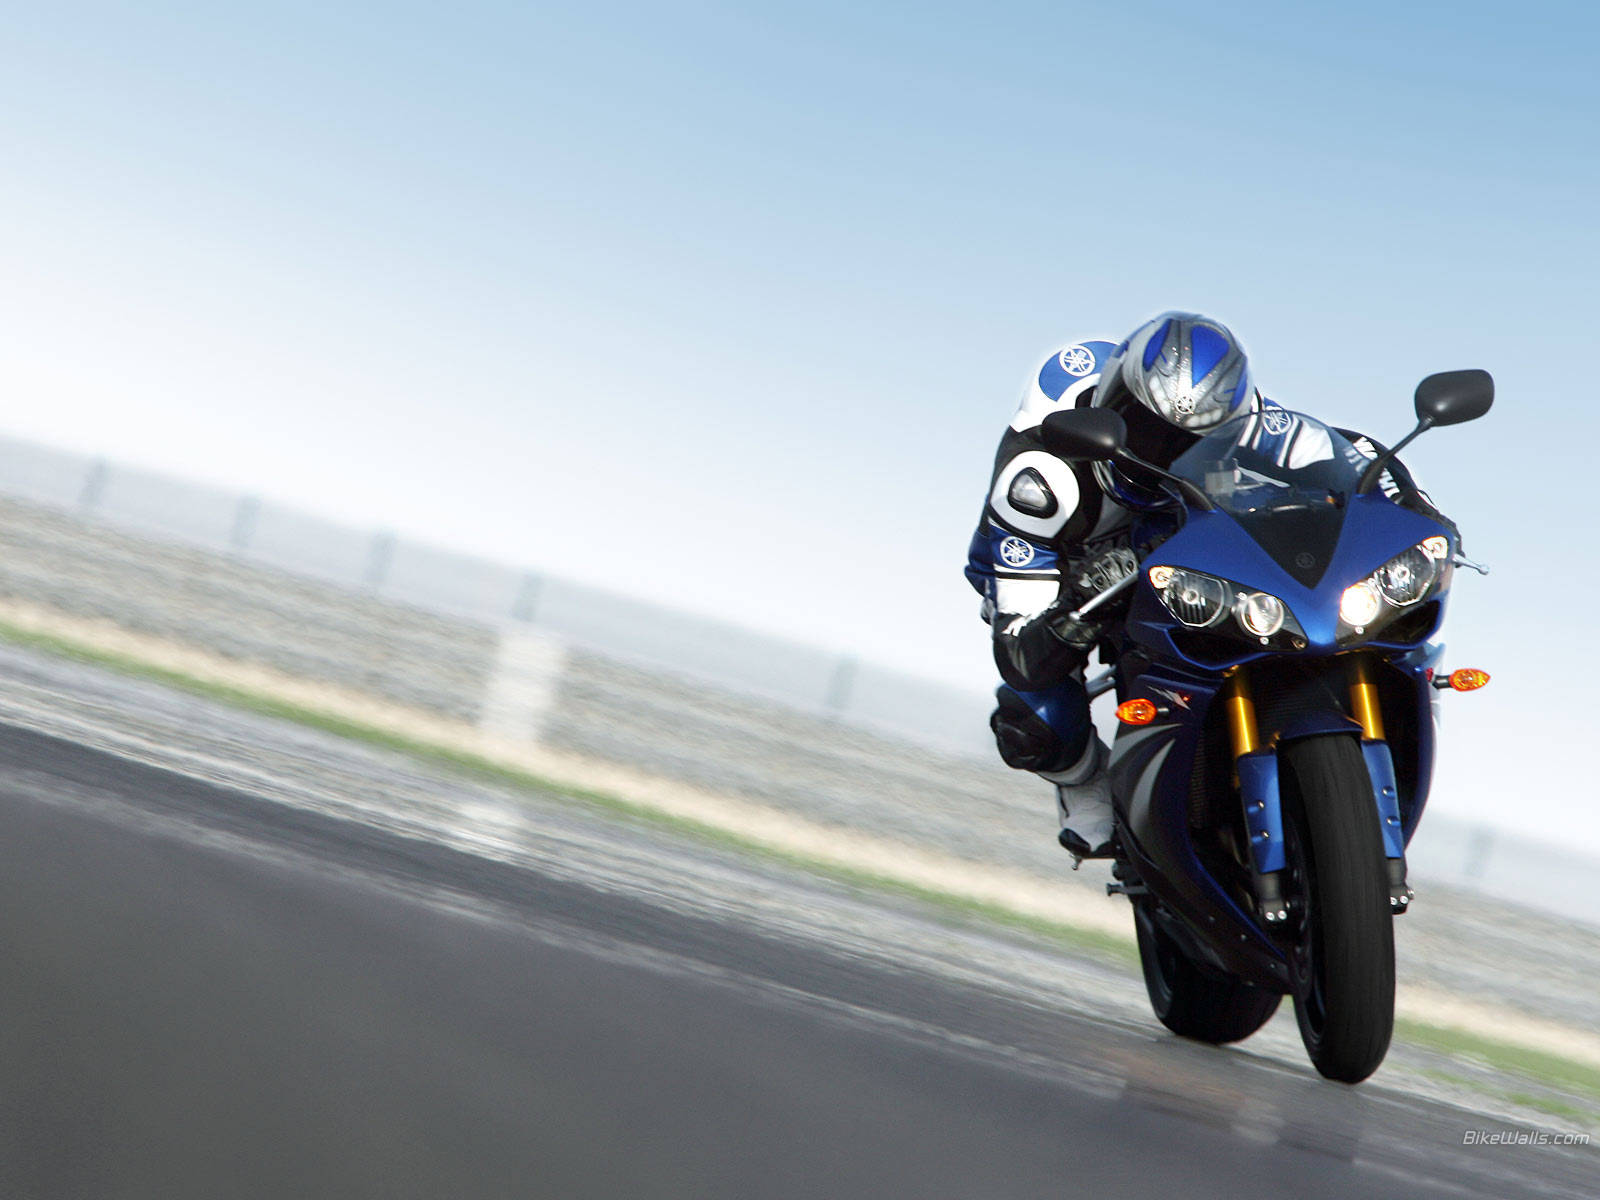 Yamaha r1 wallpaper 1 for Yamaha r1 deals